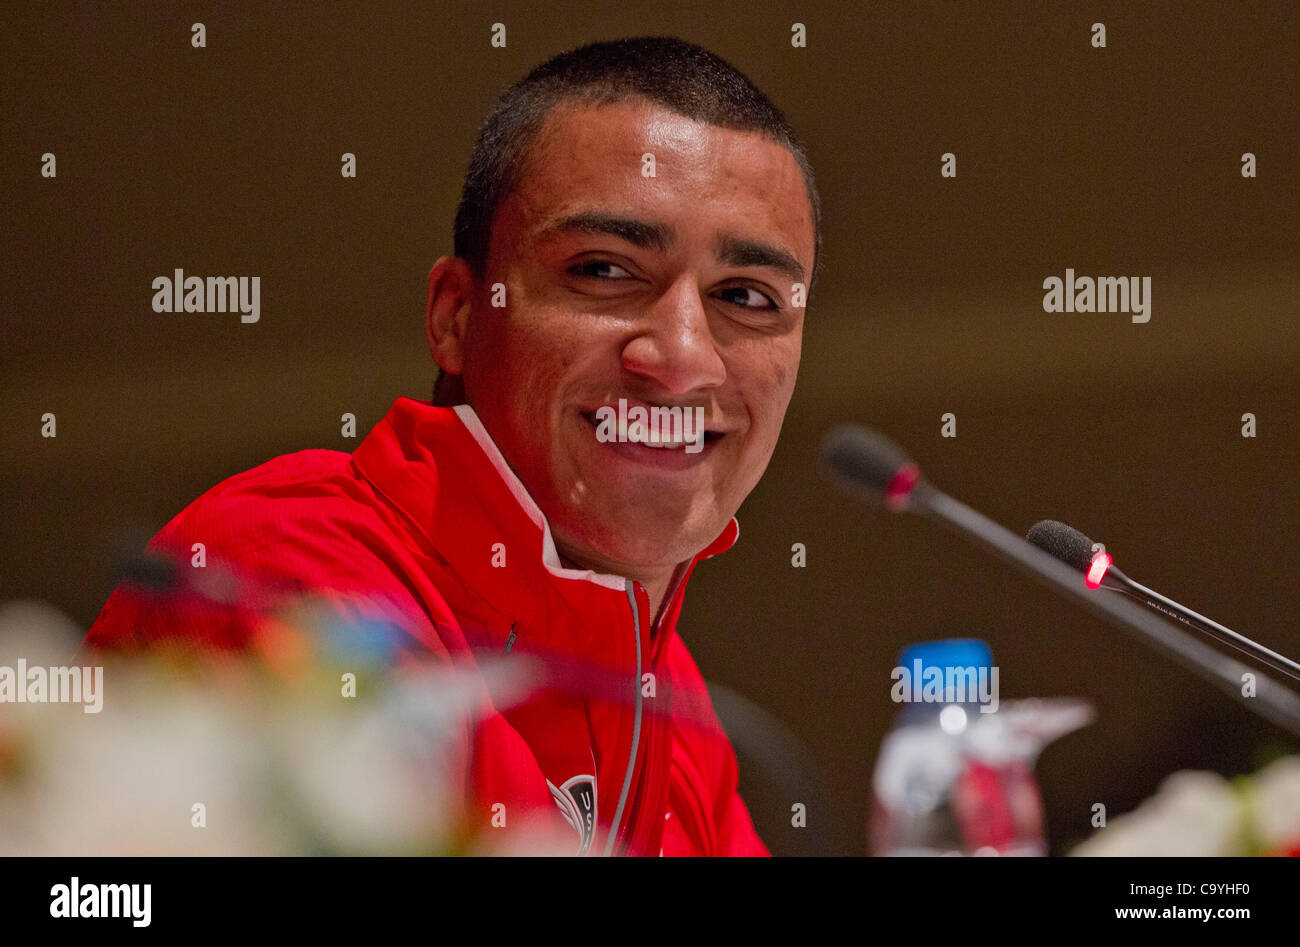 ISTANBUL, TURKEY: Thursday 8 March 2012, Ashton Eaton of the United States of America (USA), heptathlon world record - Stock Image